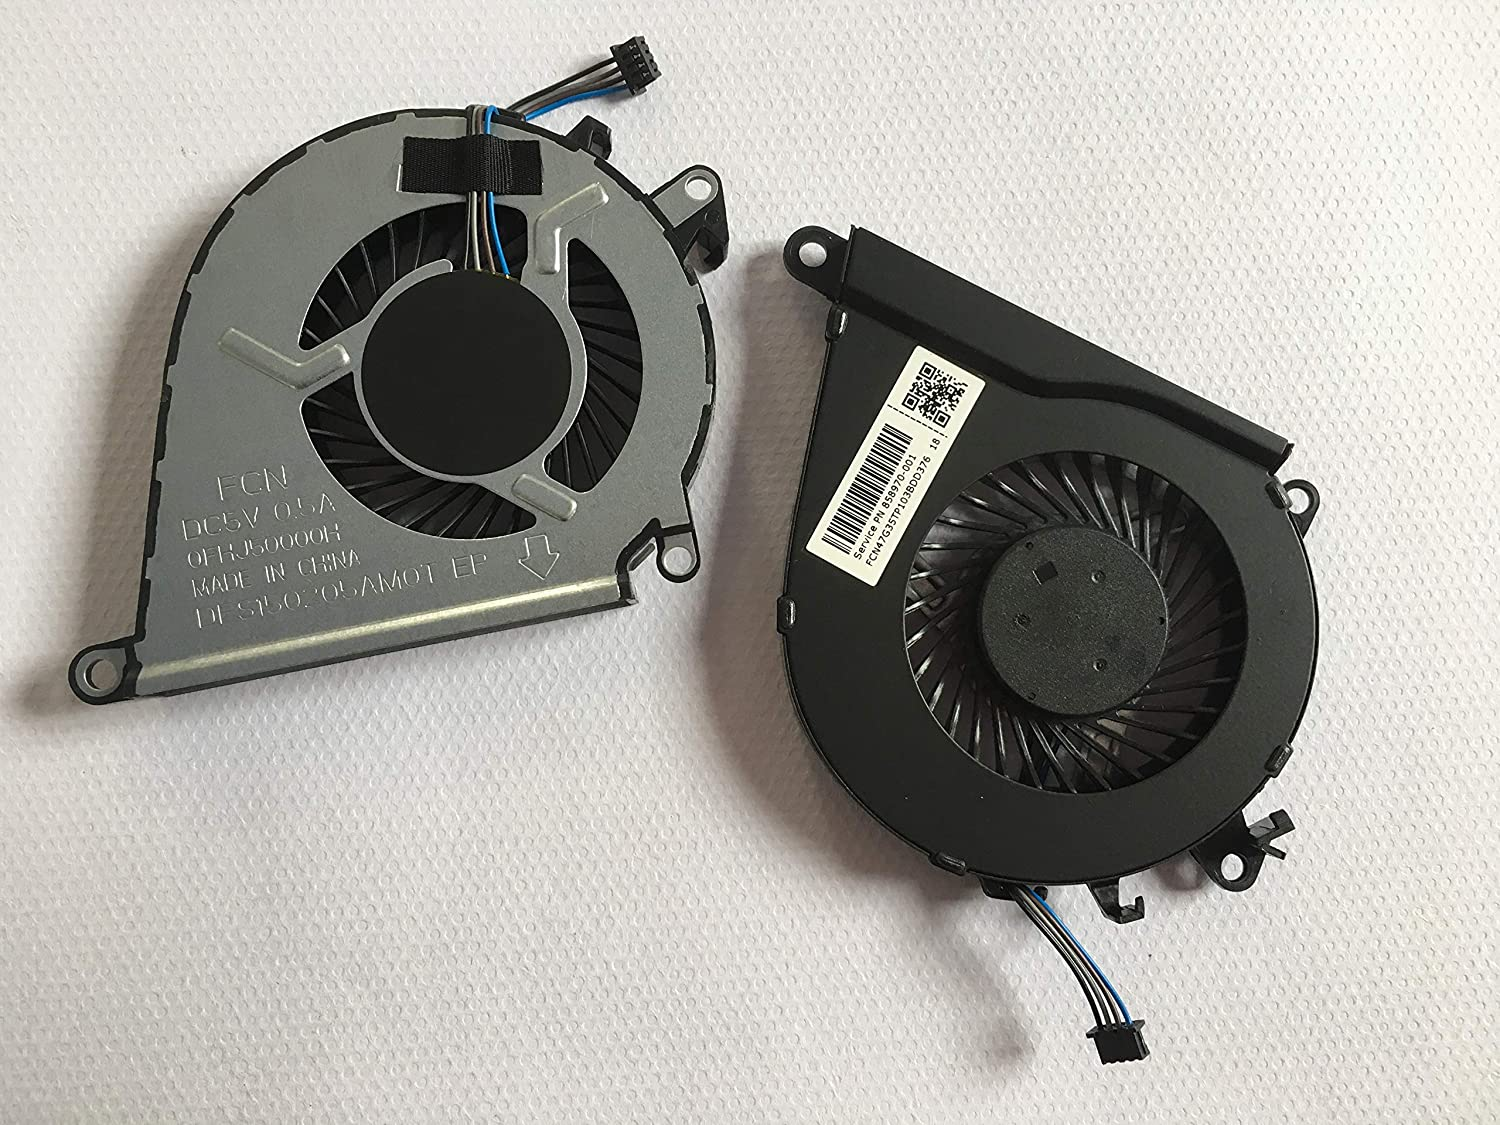 SYWpcparts Replacement Fan Compatible with HP Omen 15-AX 15-AX000 15-AX100 15-AX200 Series CPU + Gpu Cooling Fan 2 Fans